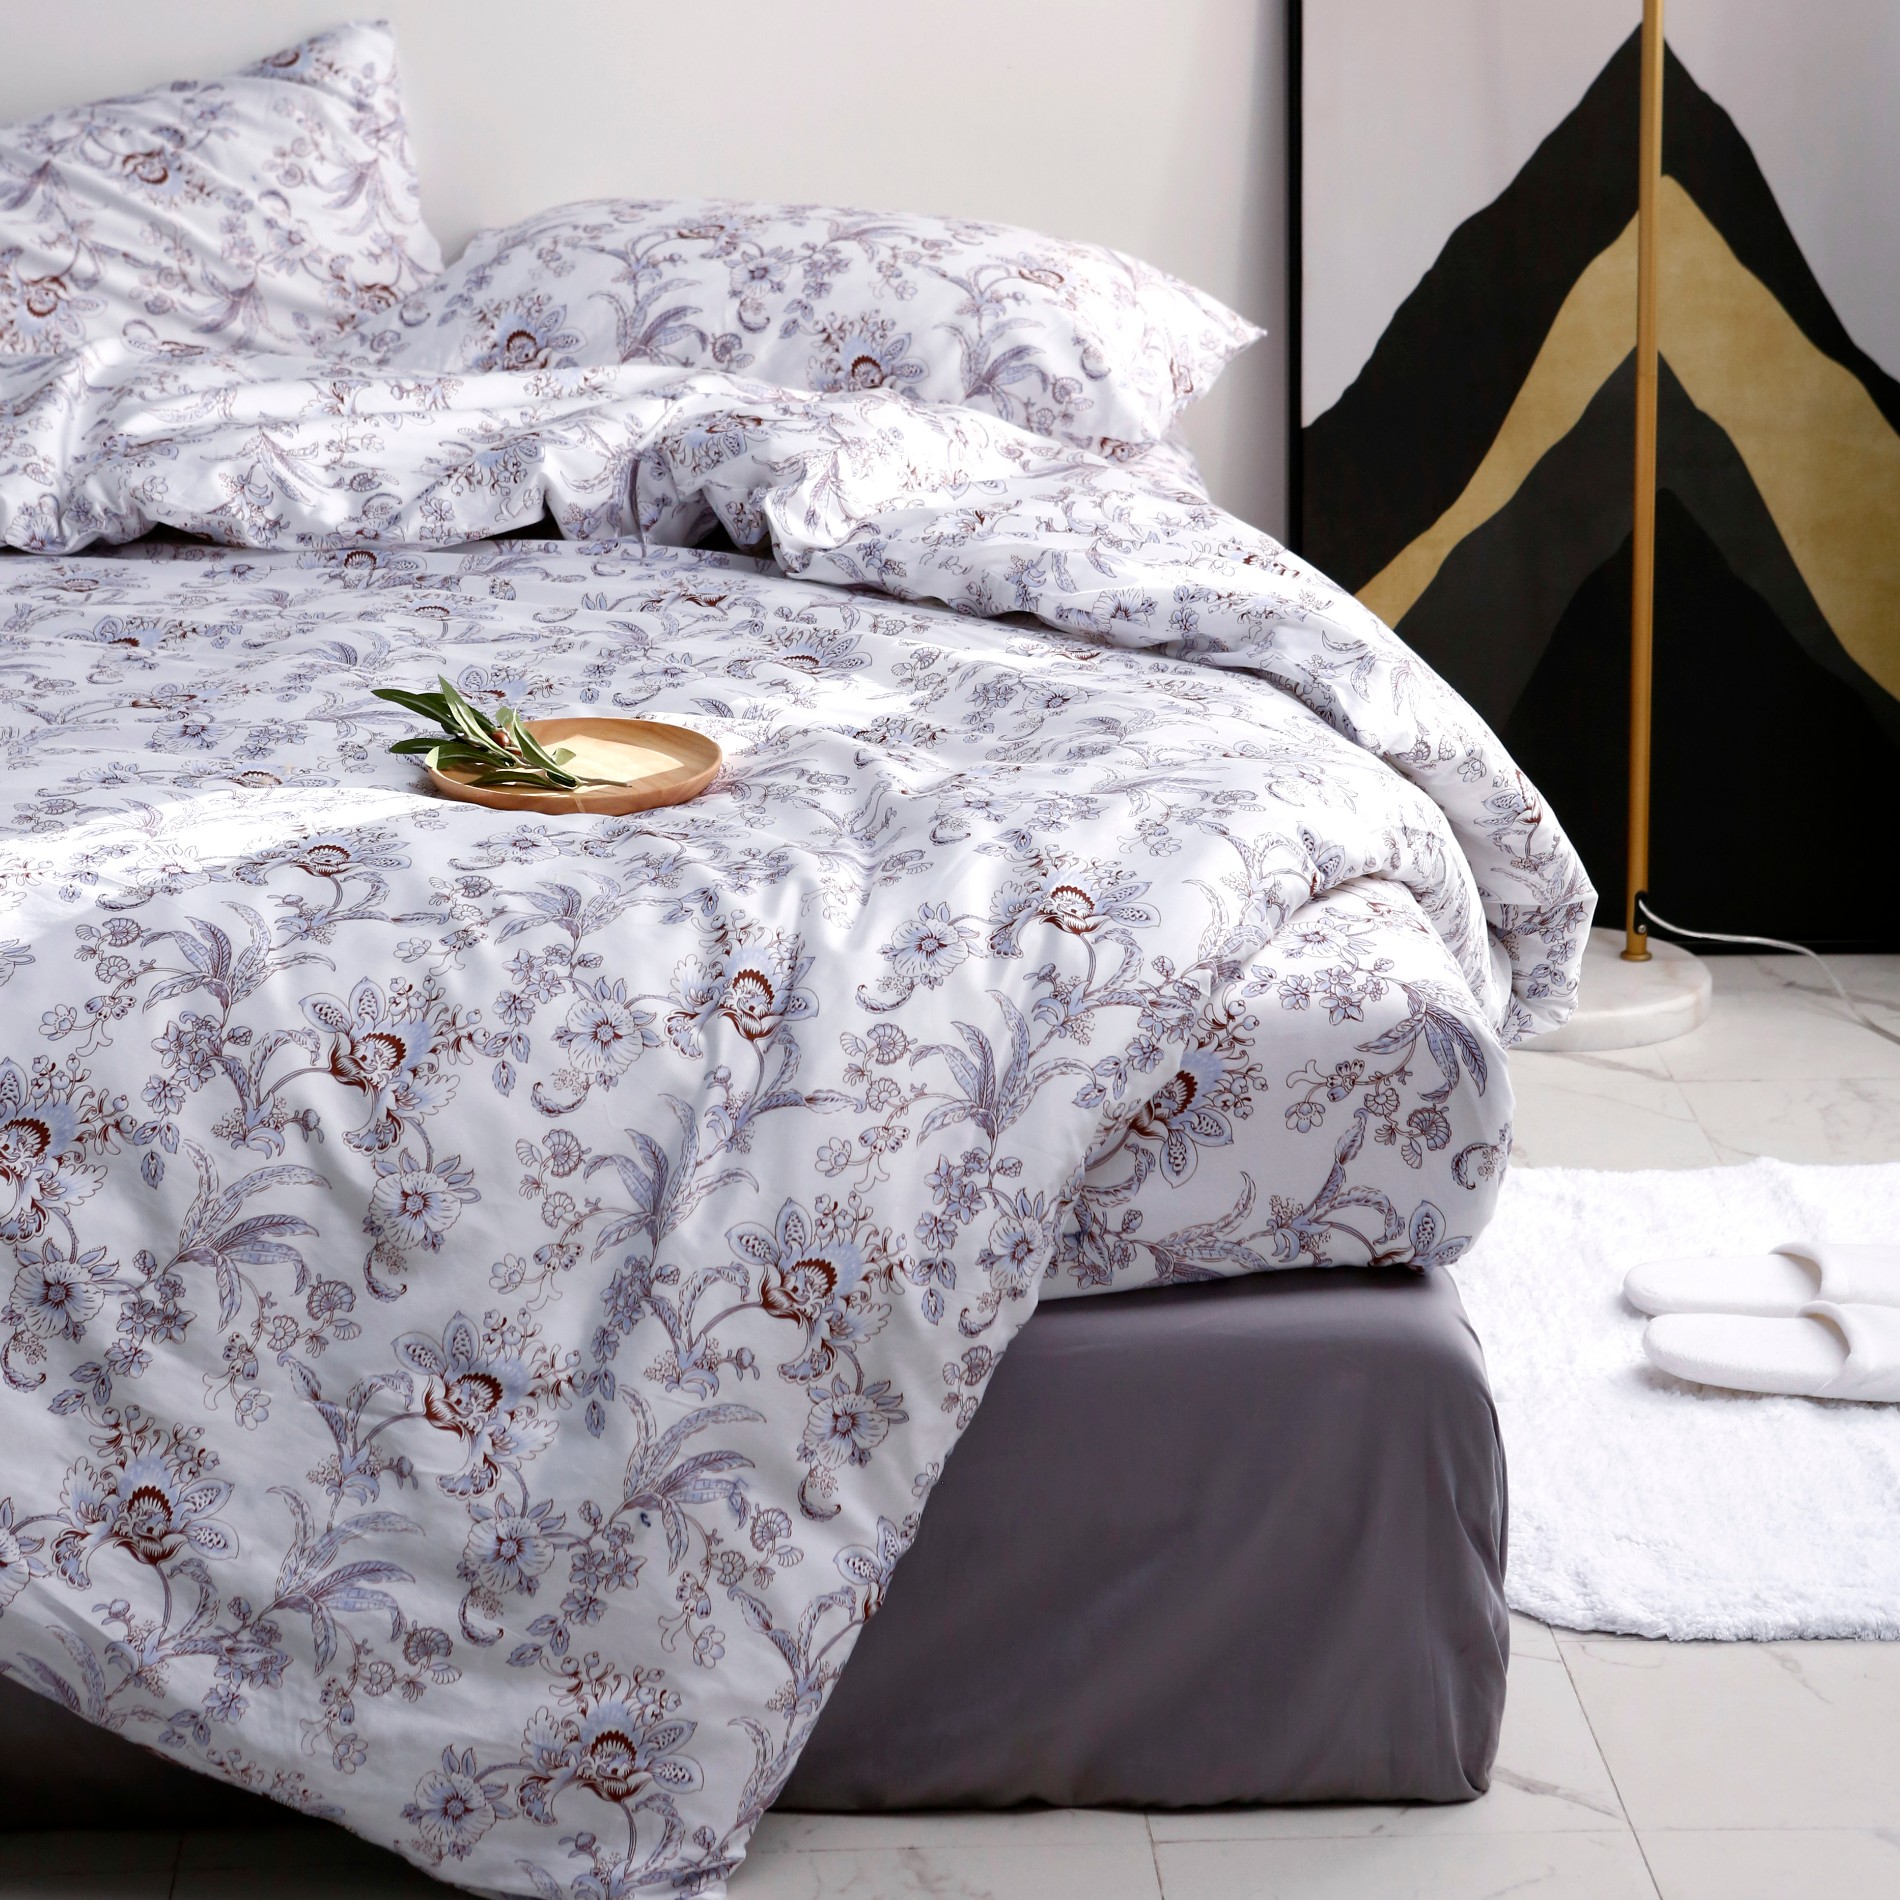 Bed Duvet Cover Manufacturers, Bed Duvet Cover Factory, Supply Bed Duvet Cover